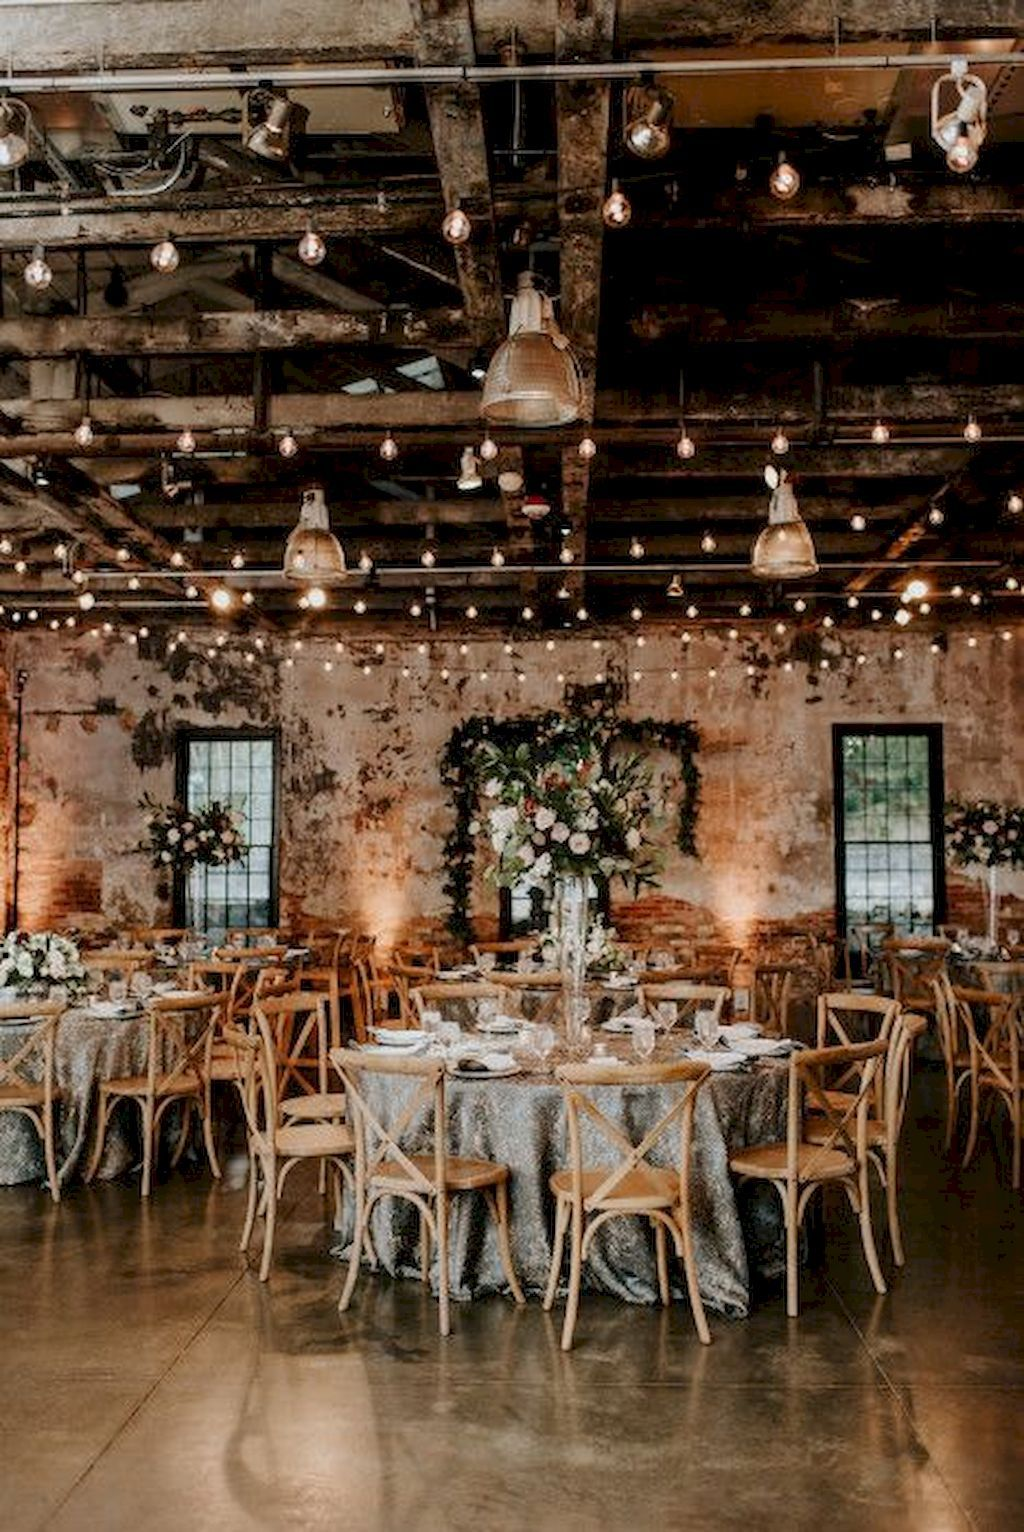 Choose Best Popular Wedding Themes In 2020 Baltimore Wedding Venue Wedding Decor Elegant Popular Wedding Themes